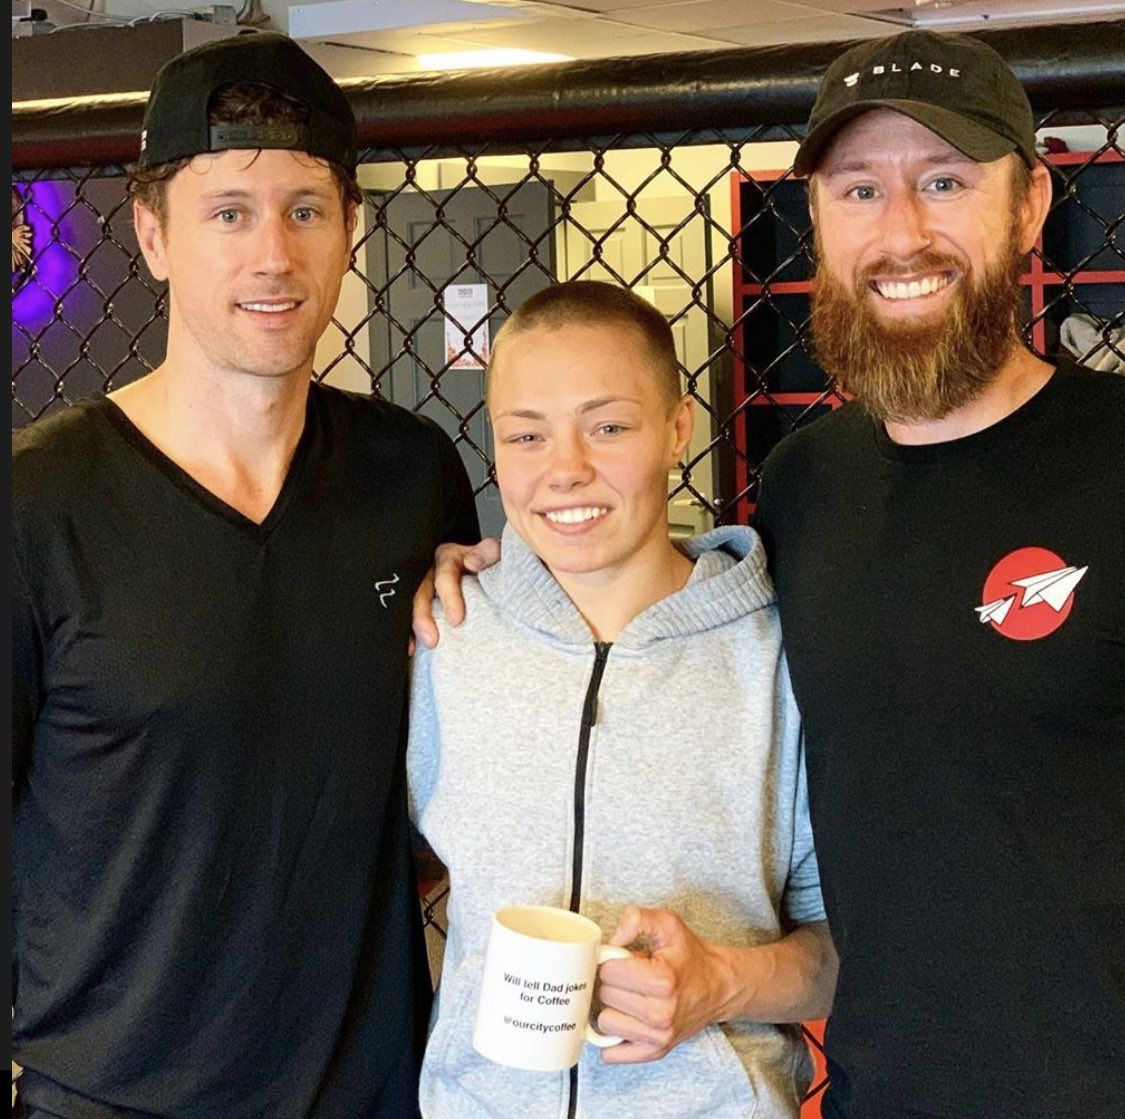 A little biased tonight watching #UFC251  @rosenamajunas is obviously a badass, but she's also one of the nicest humans we've ever worked with 🌹   📸 From a recent collab with Rose & @ourcitycoffee ☕️ https://t.co/GpspcK01b0